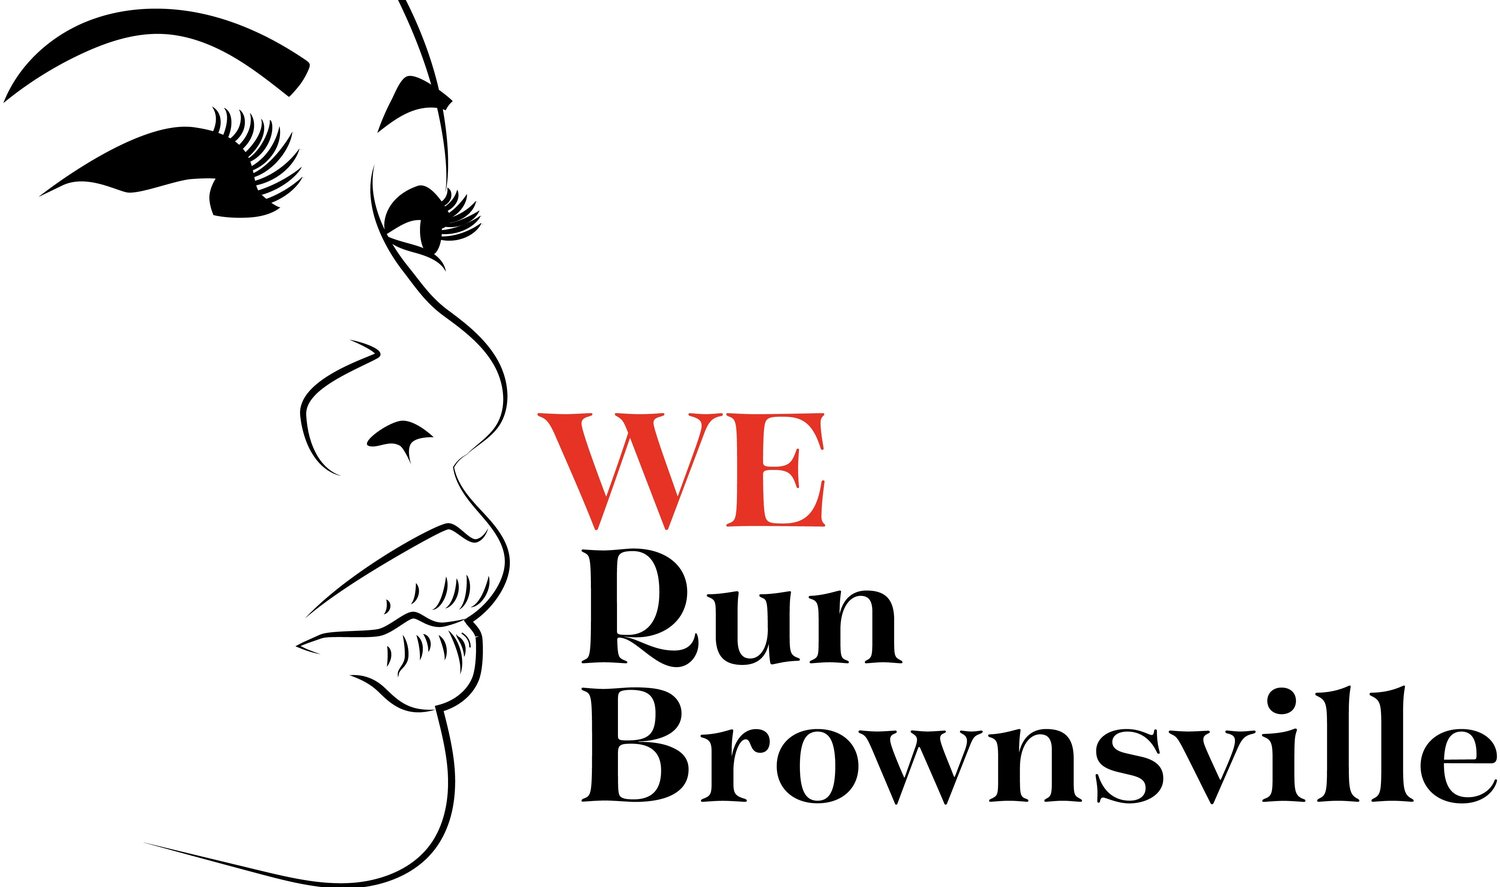 WE RUN BROWNSVILLE